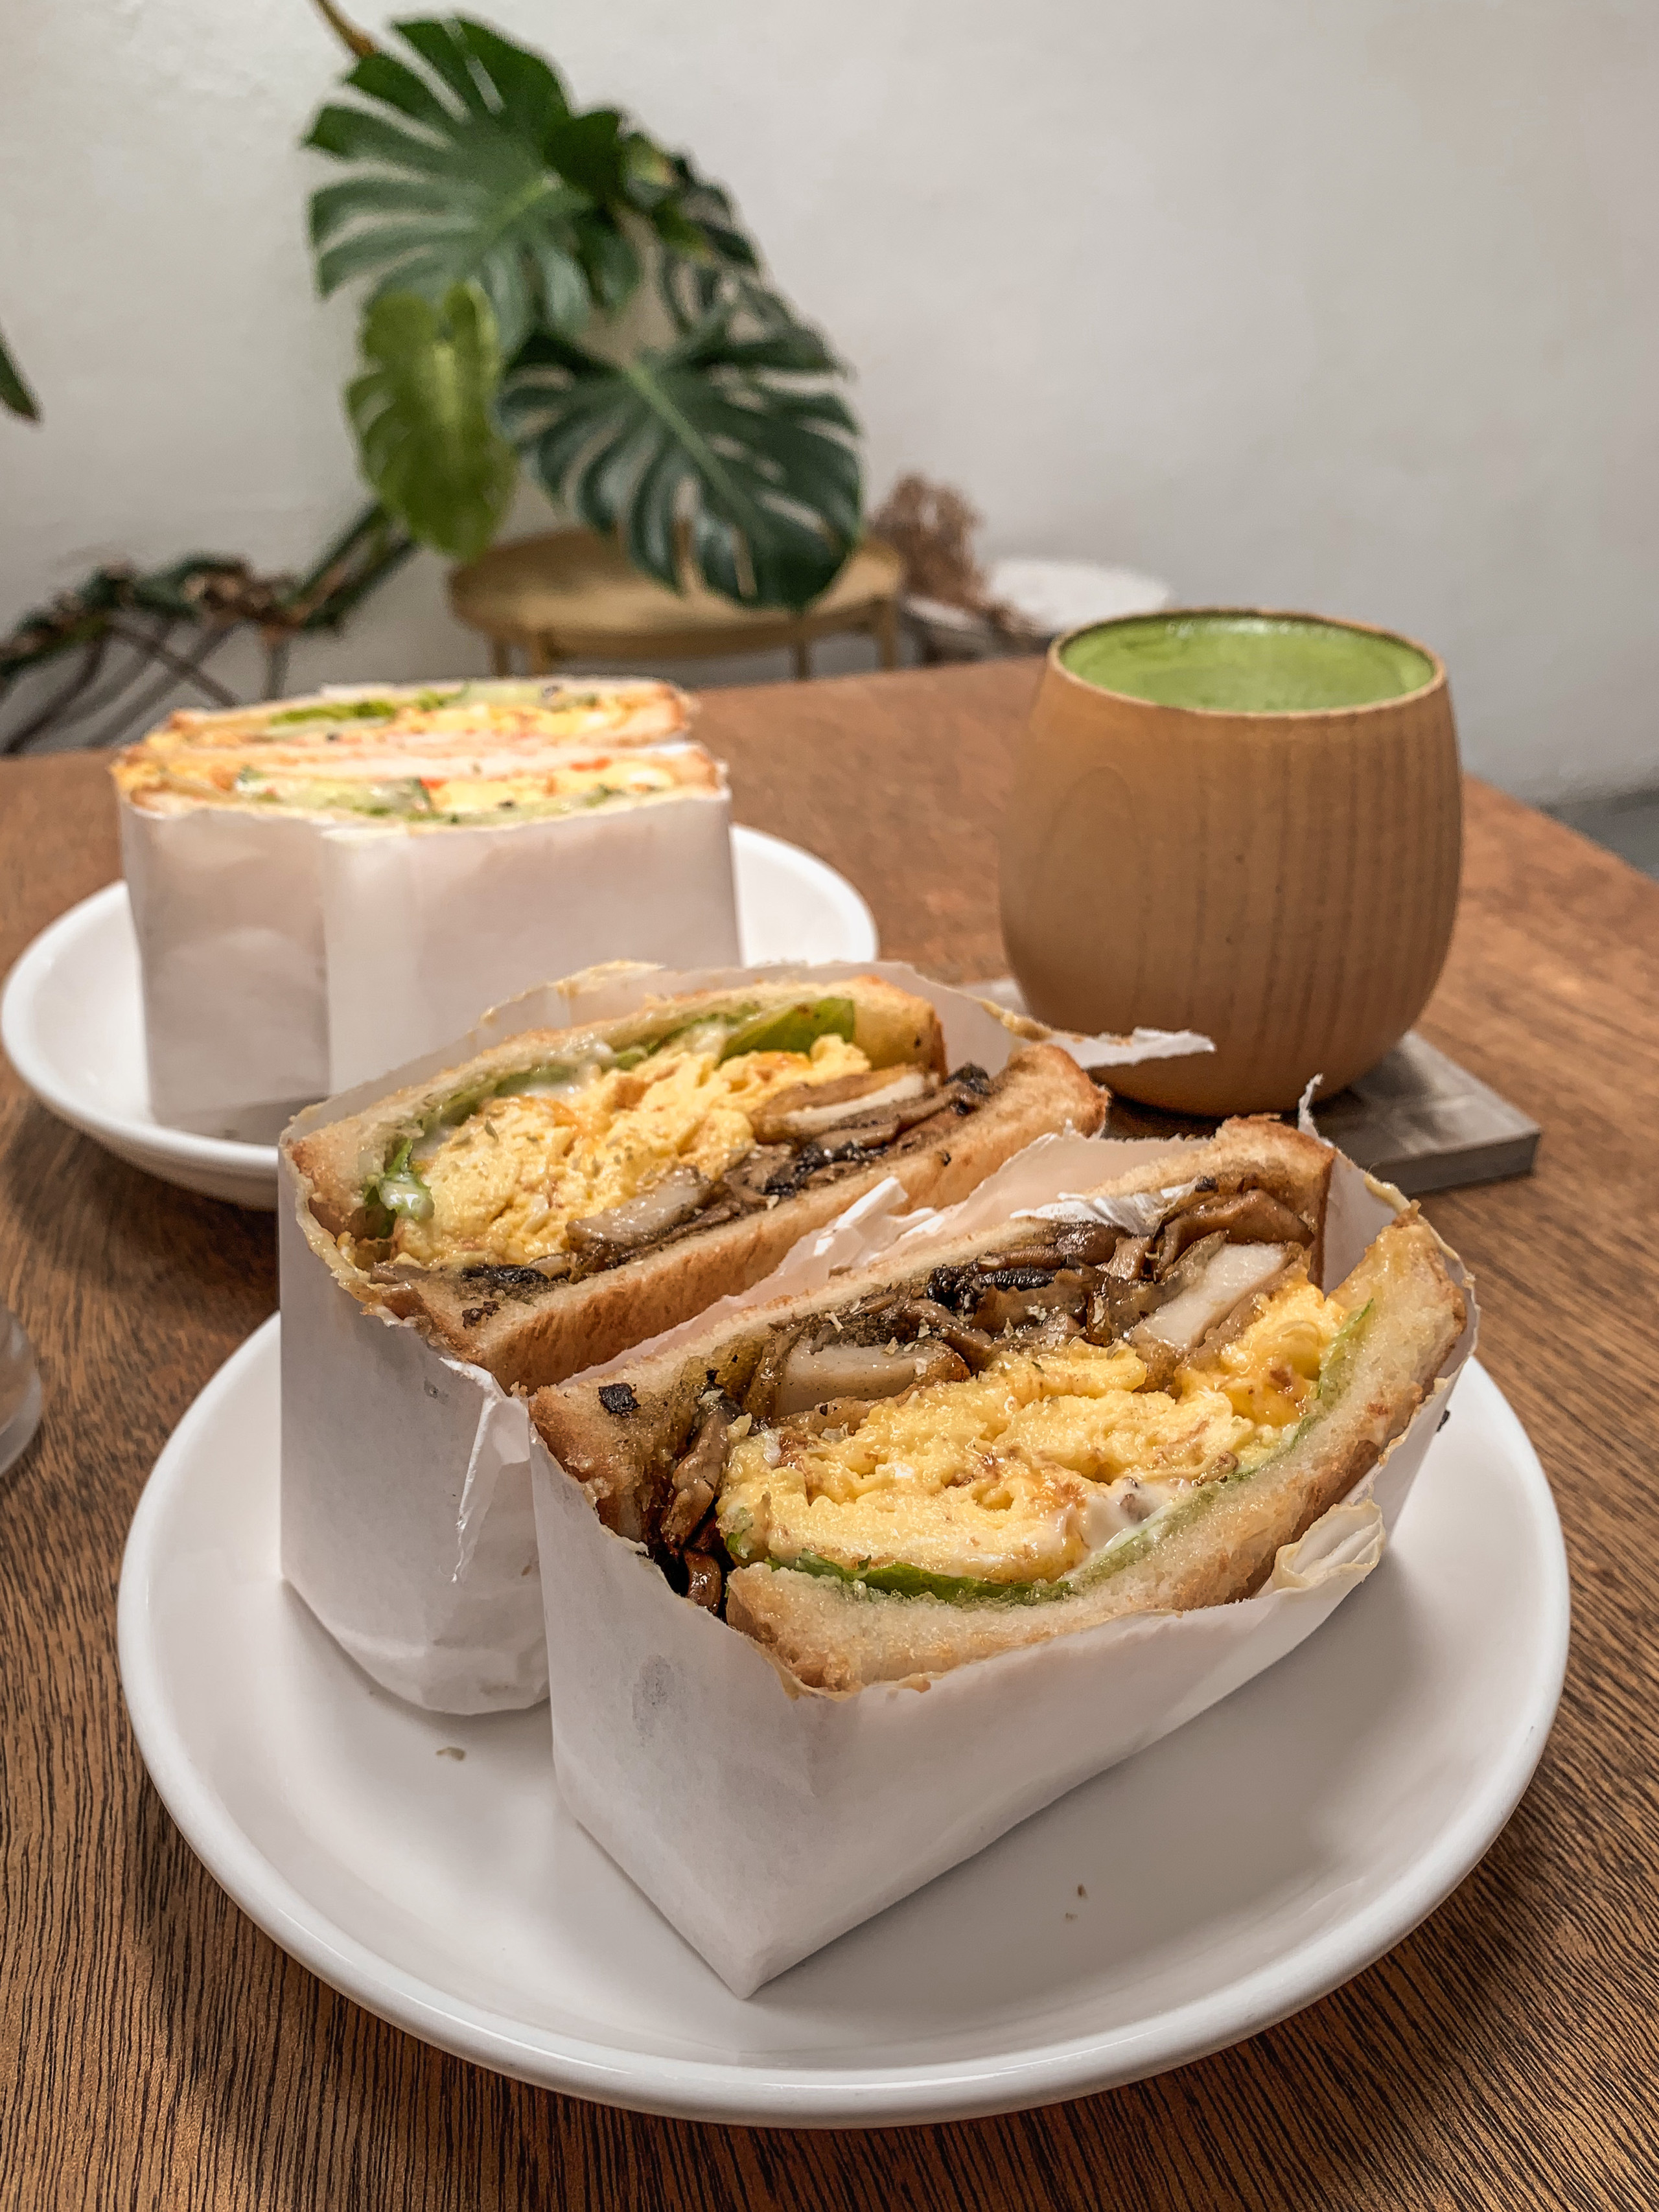 Le楽 Cafe Garlic Butter Shrooms Sandwich, food photography by RollingBear Travels.